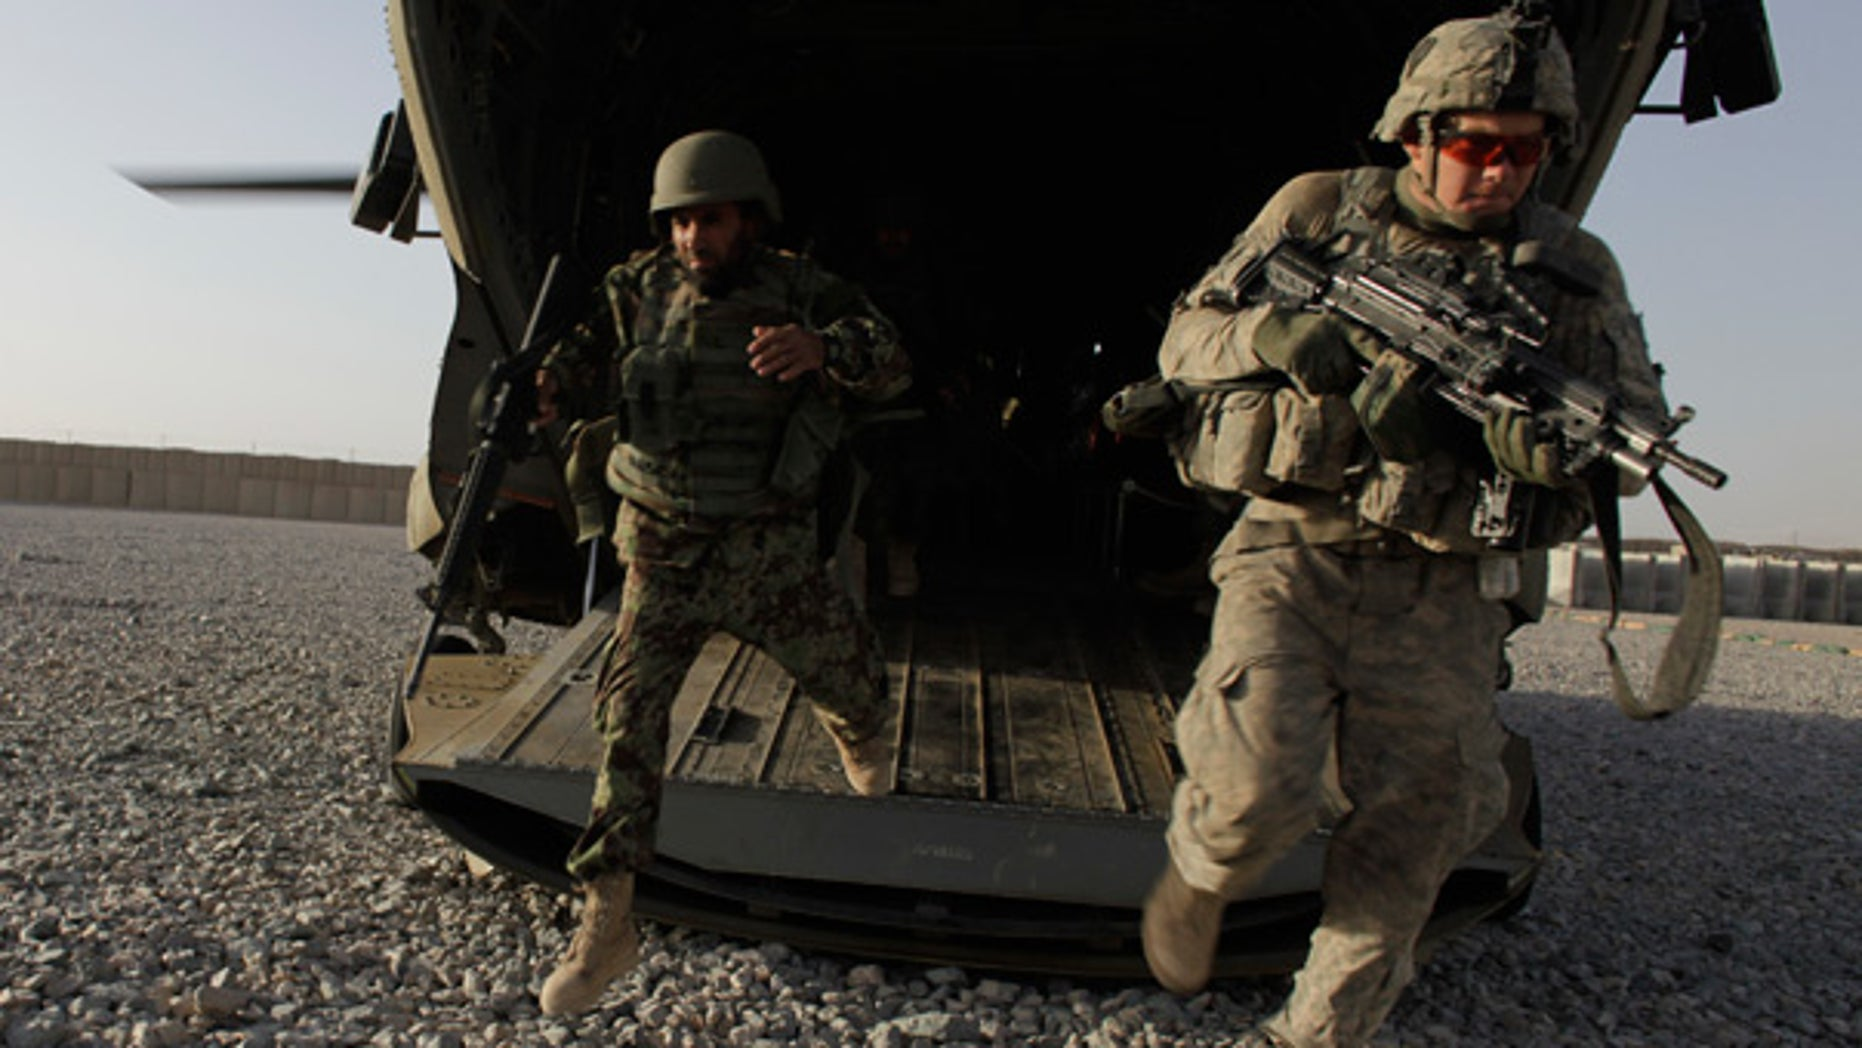 Sept. 11: U.S. soldiers deploy off the back of an army helicopter in Zhari District, southern Afghanistan.